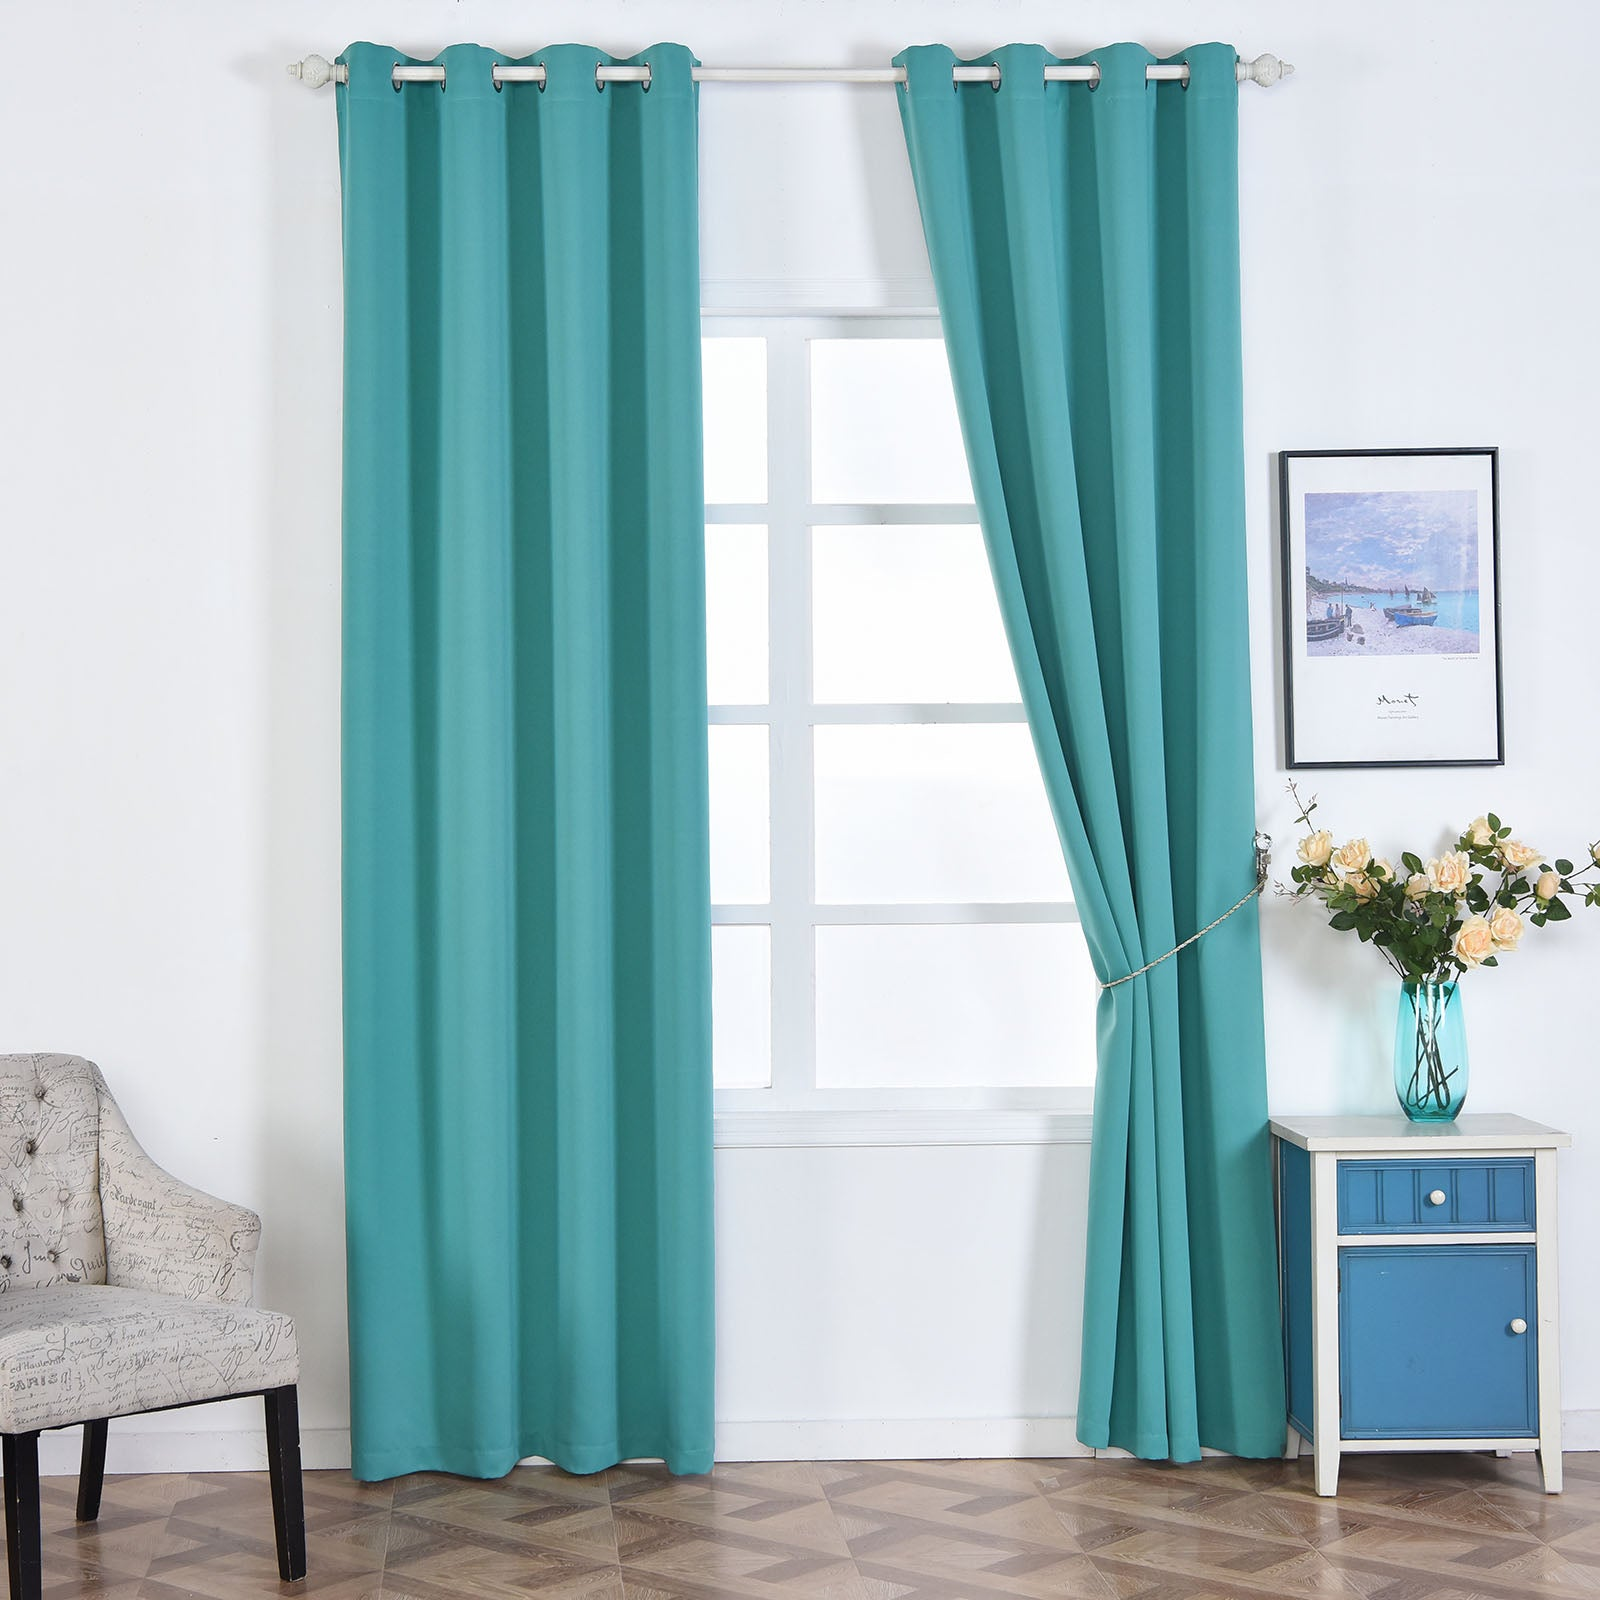 Blackout Curtains 52x108 Turquoise Pack Of 2 Thermal Insulated With Chrome Grommet Window Treatment Panels